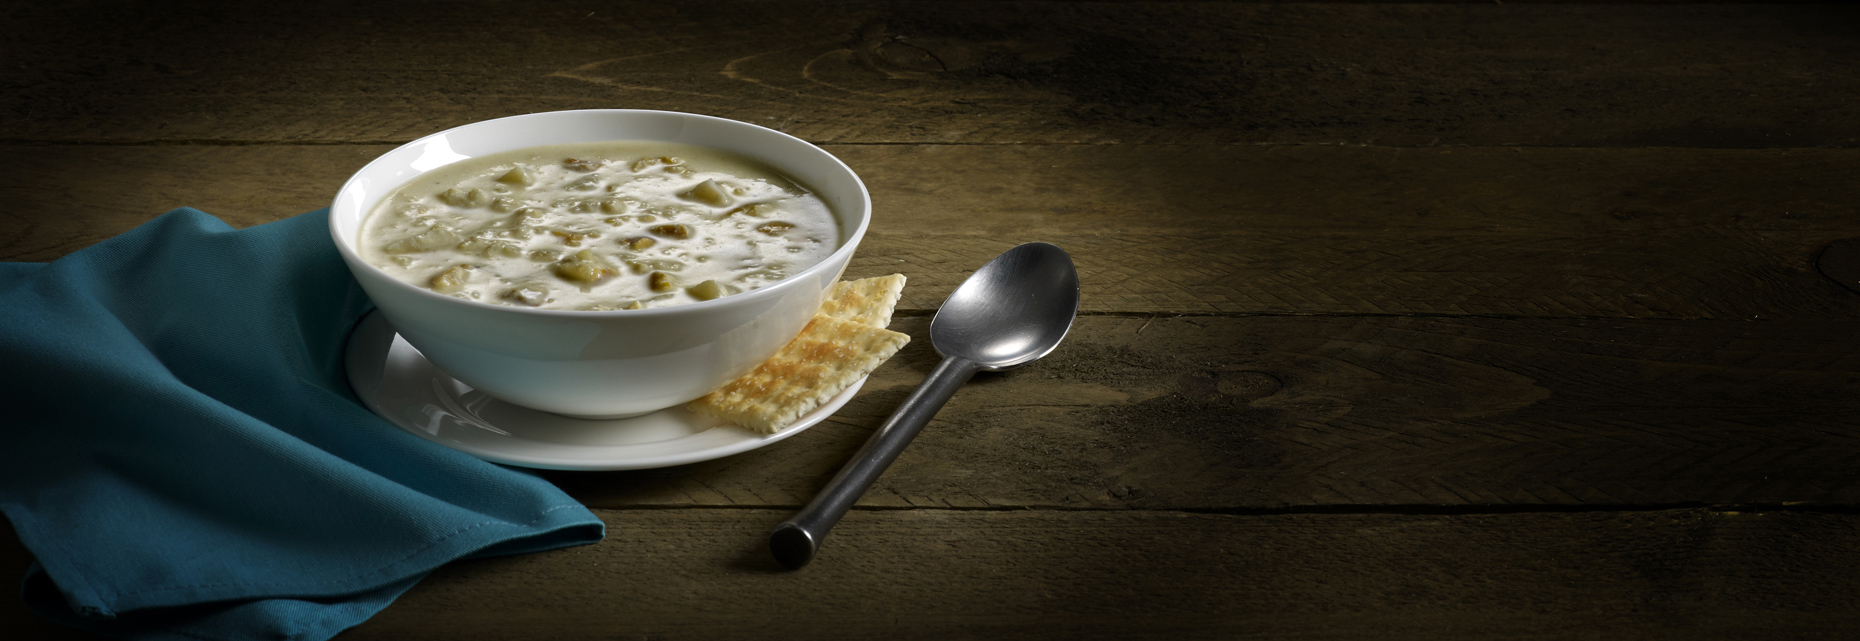 soup_ClamChowder_Wide